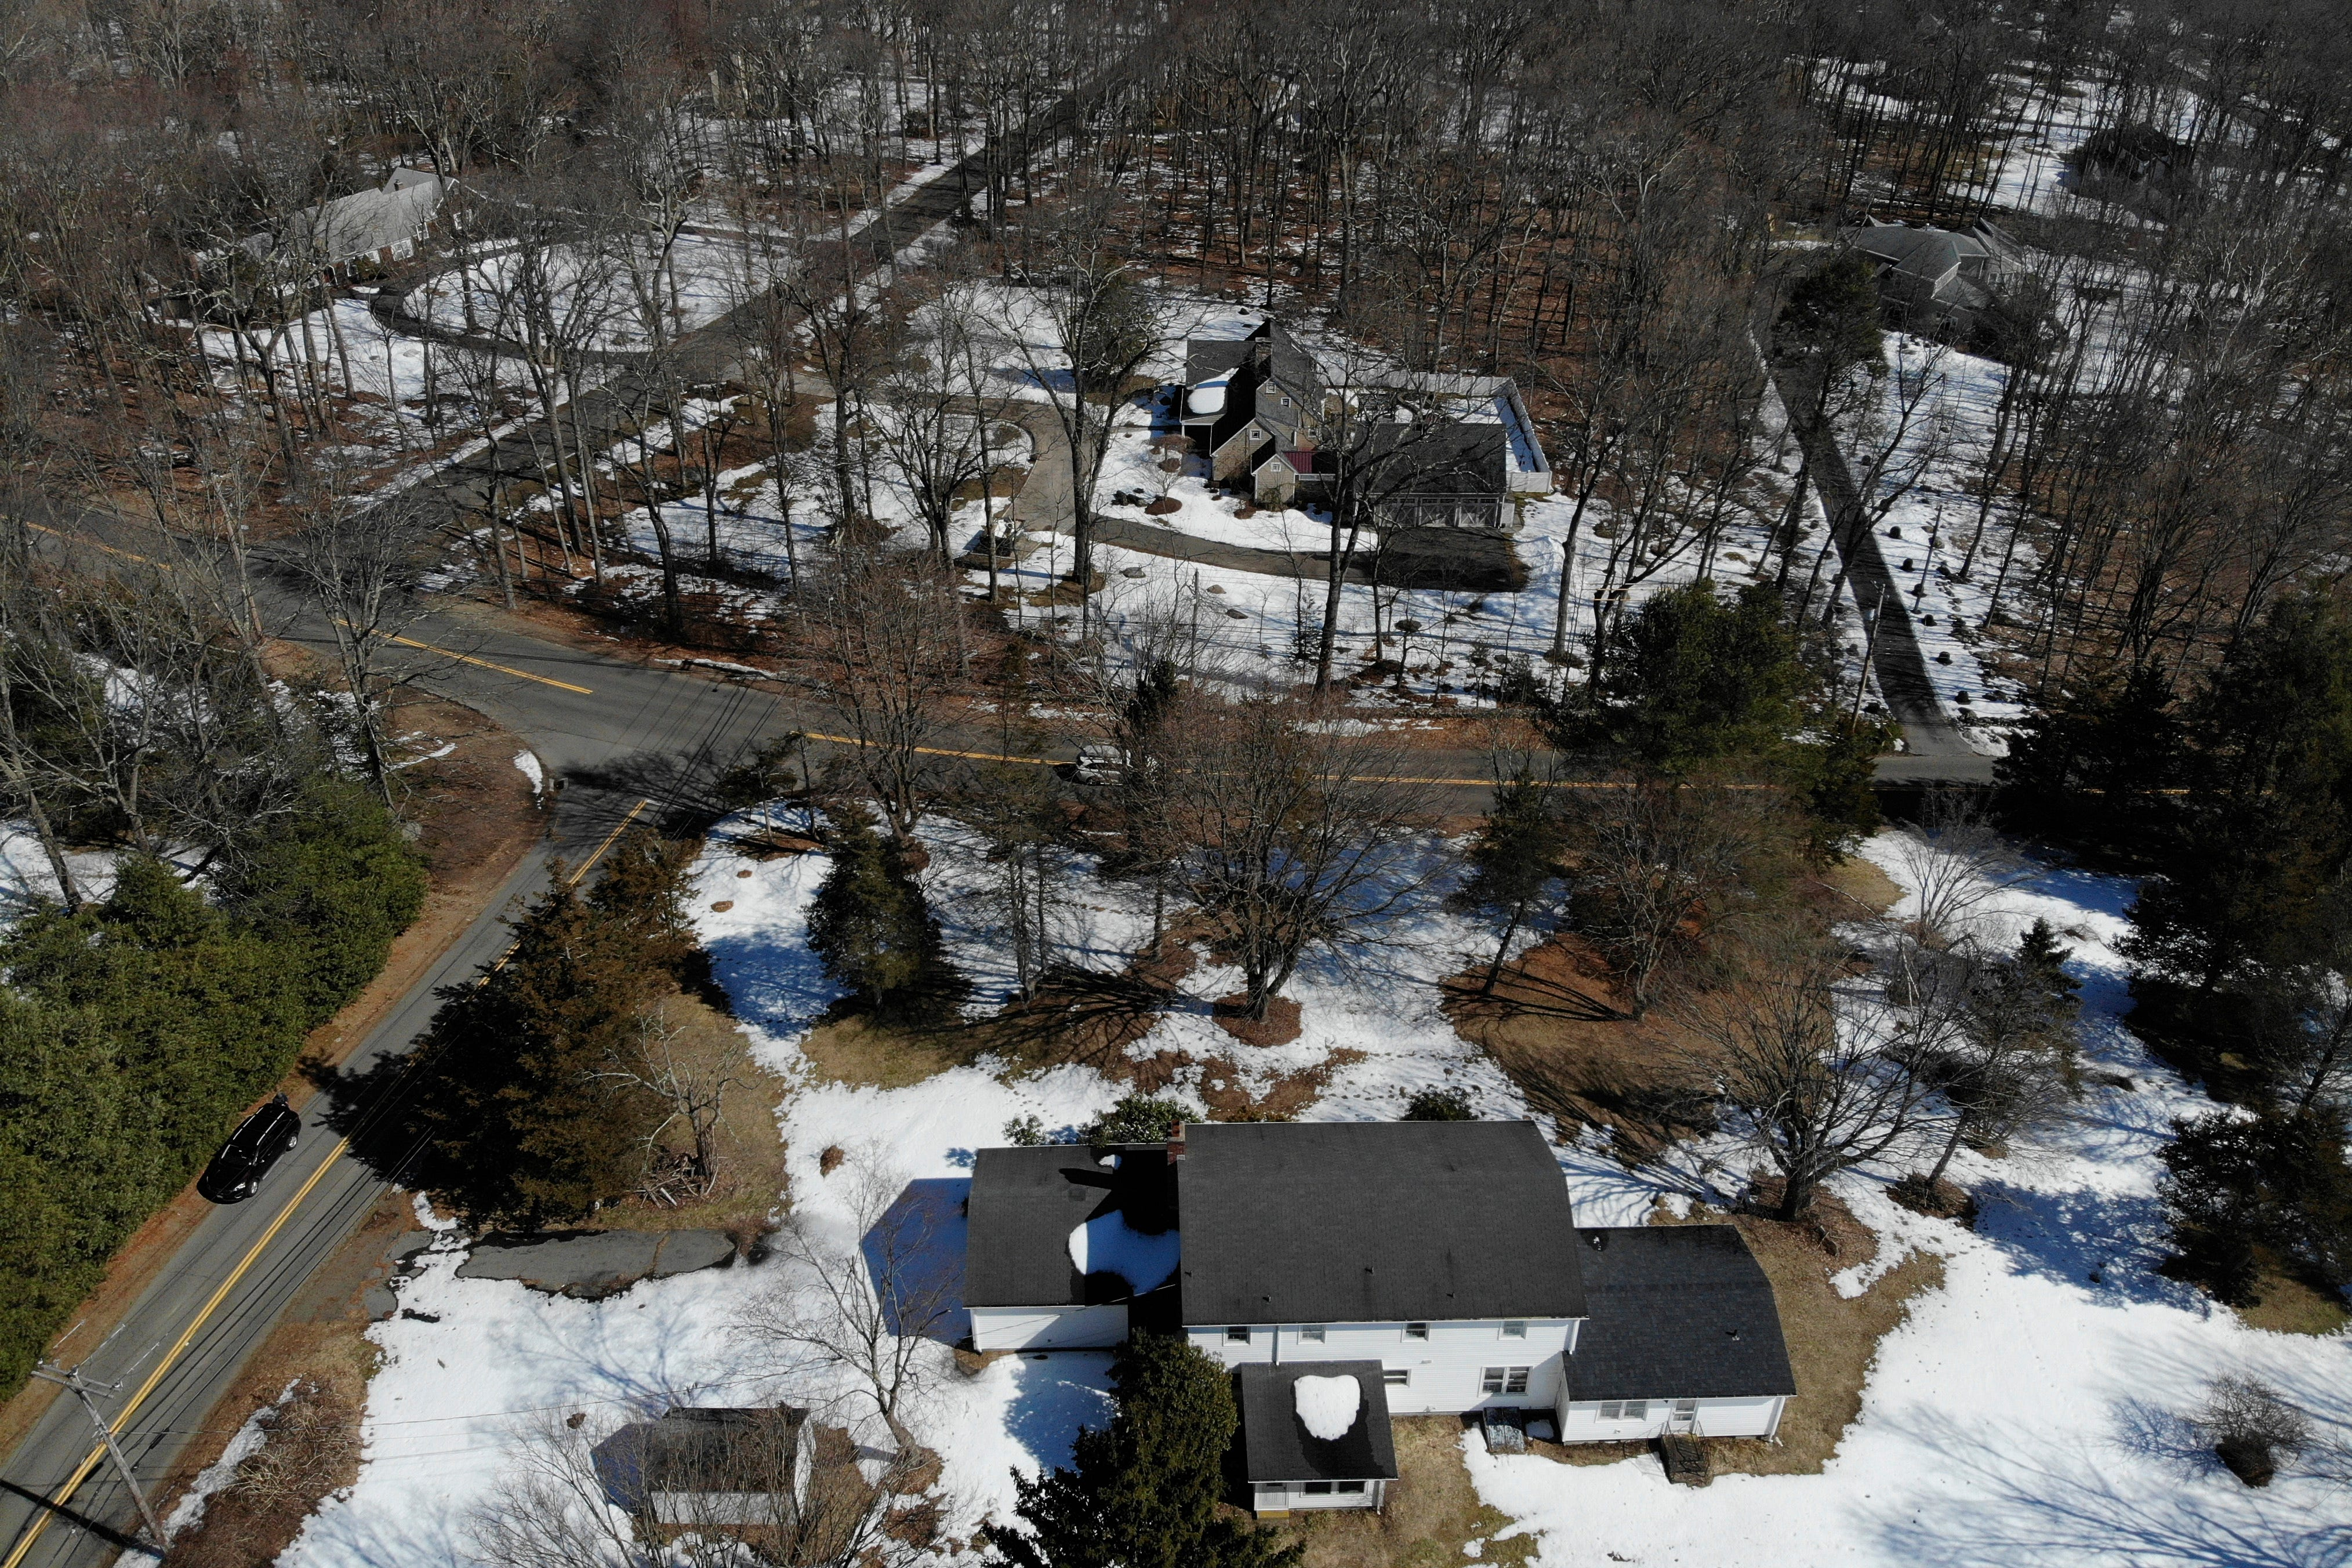 A five-bedroom house, bottom, is seen in Woodbridge, Conn., Wednesday, March 3, 2021.